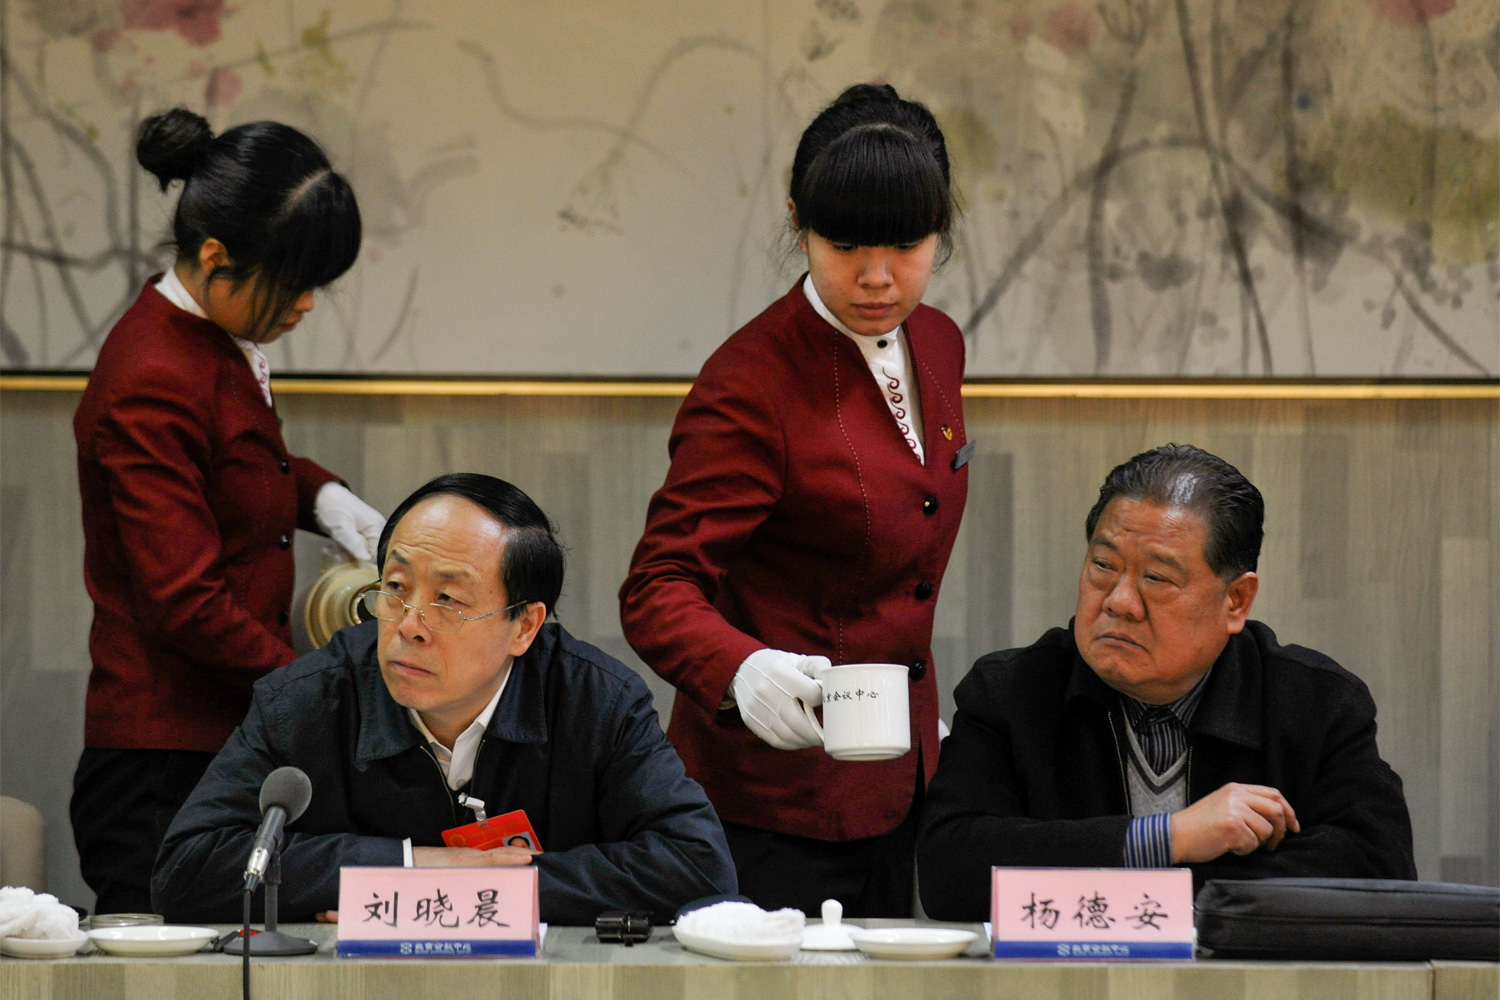 NPC deputies Liu Xiaochen (seated left) and Yang De'an listen to a speech by a Beijing deputy during a forum between NPC and Beijing Municipal People's Congress deputies, as two female waitresses pass to refill tea, January 20, 2011.